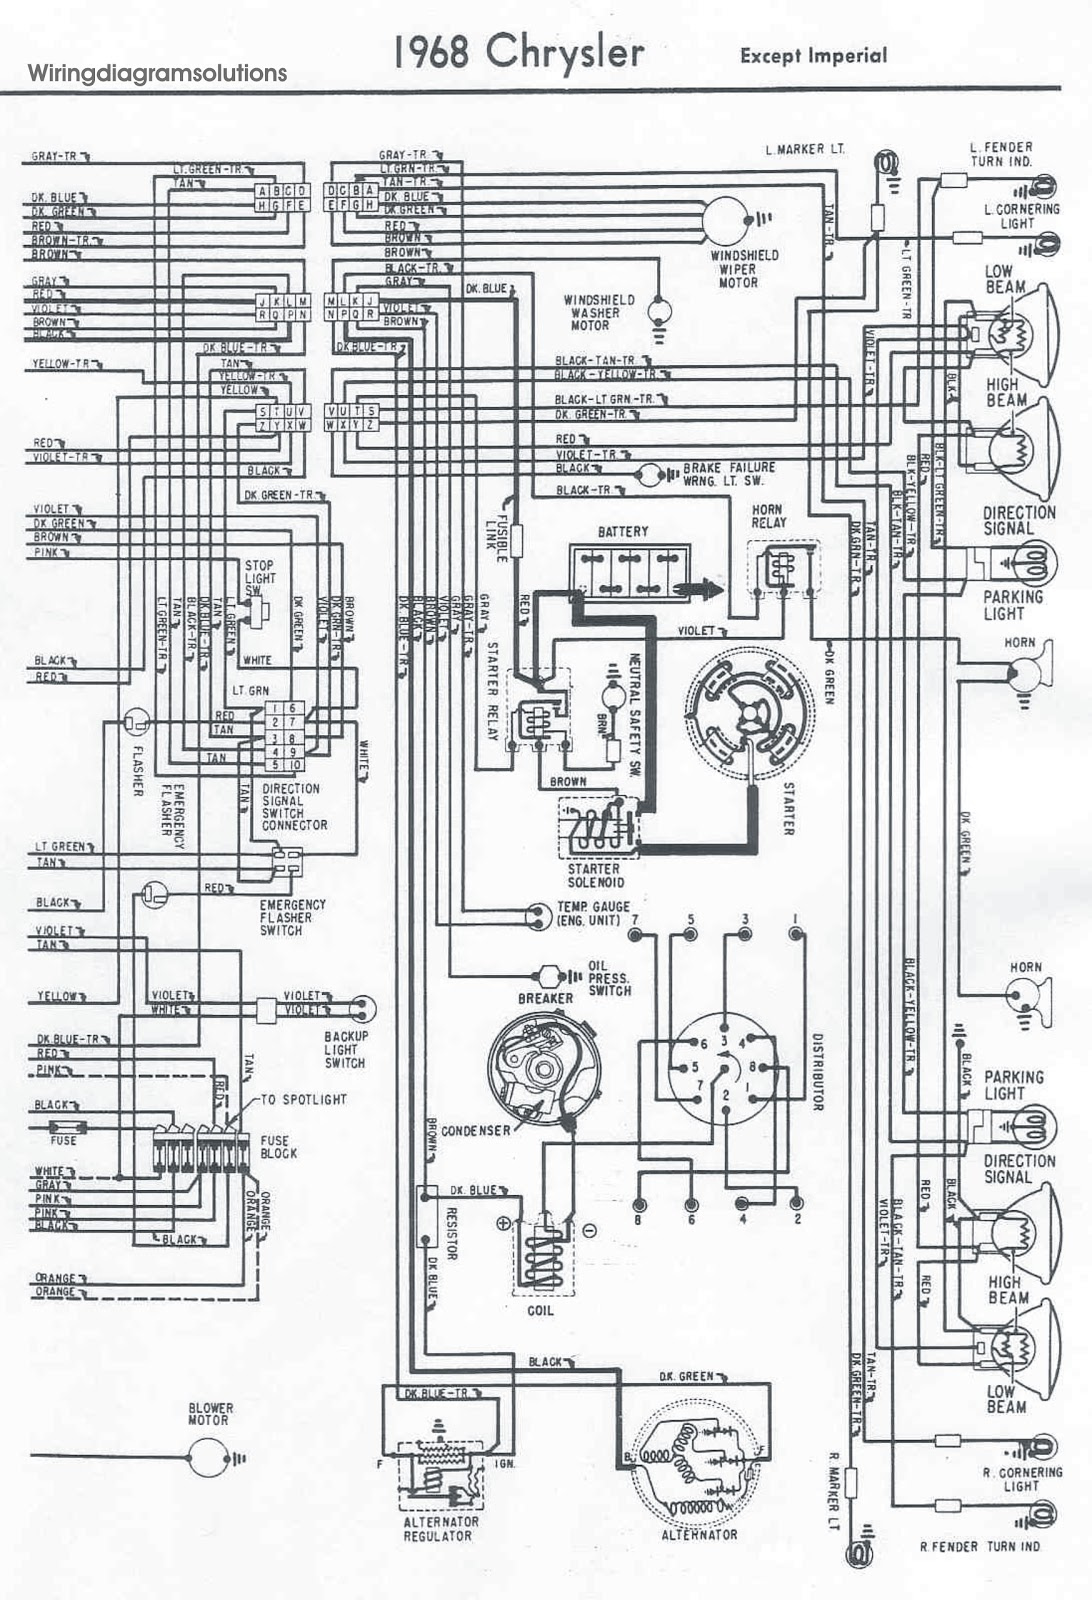 Diagram 1939 Chrysler Wiring Diagram Full Version Hd Quality Wiring Diagram Diagrampress Efran It